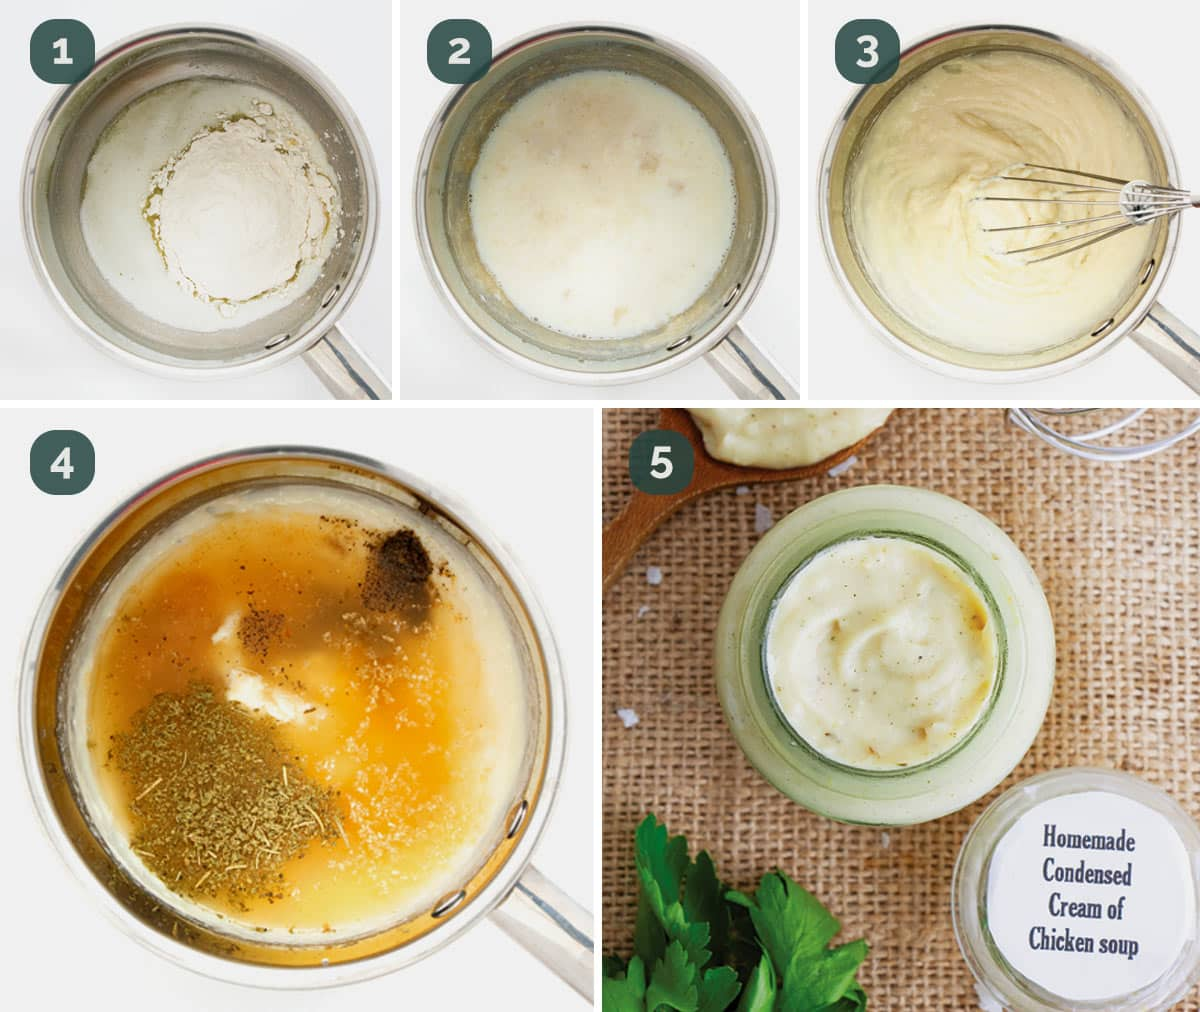 process shots showing how to make condensed cream of chicken soup.